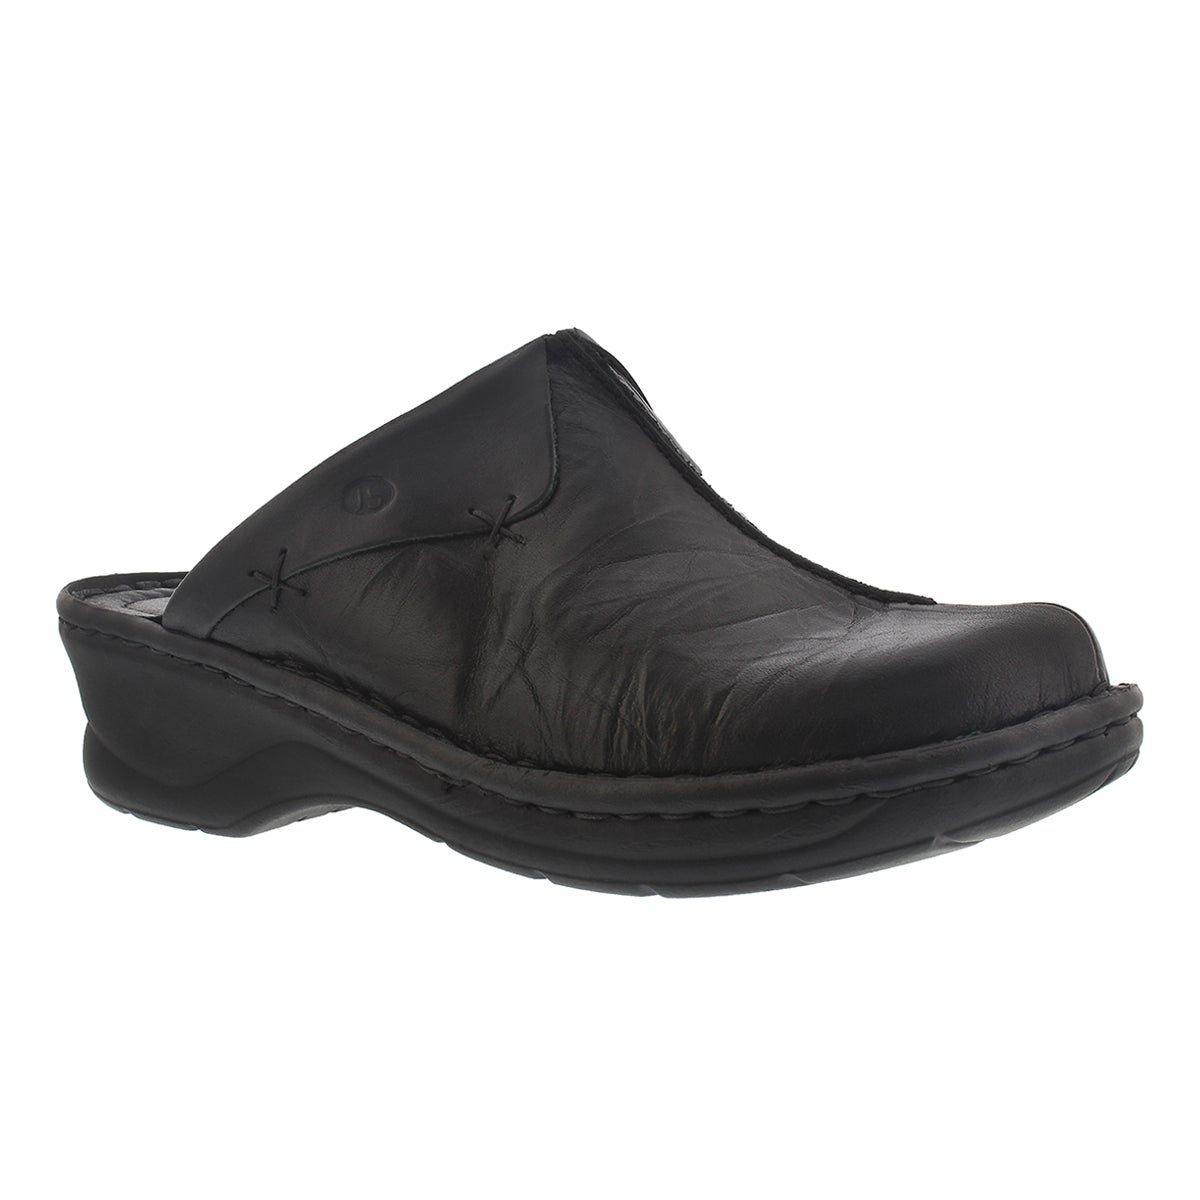 Women's CATALONIA black low wedge clogs